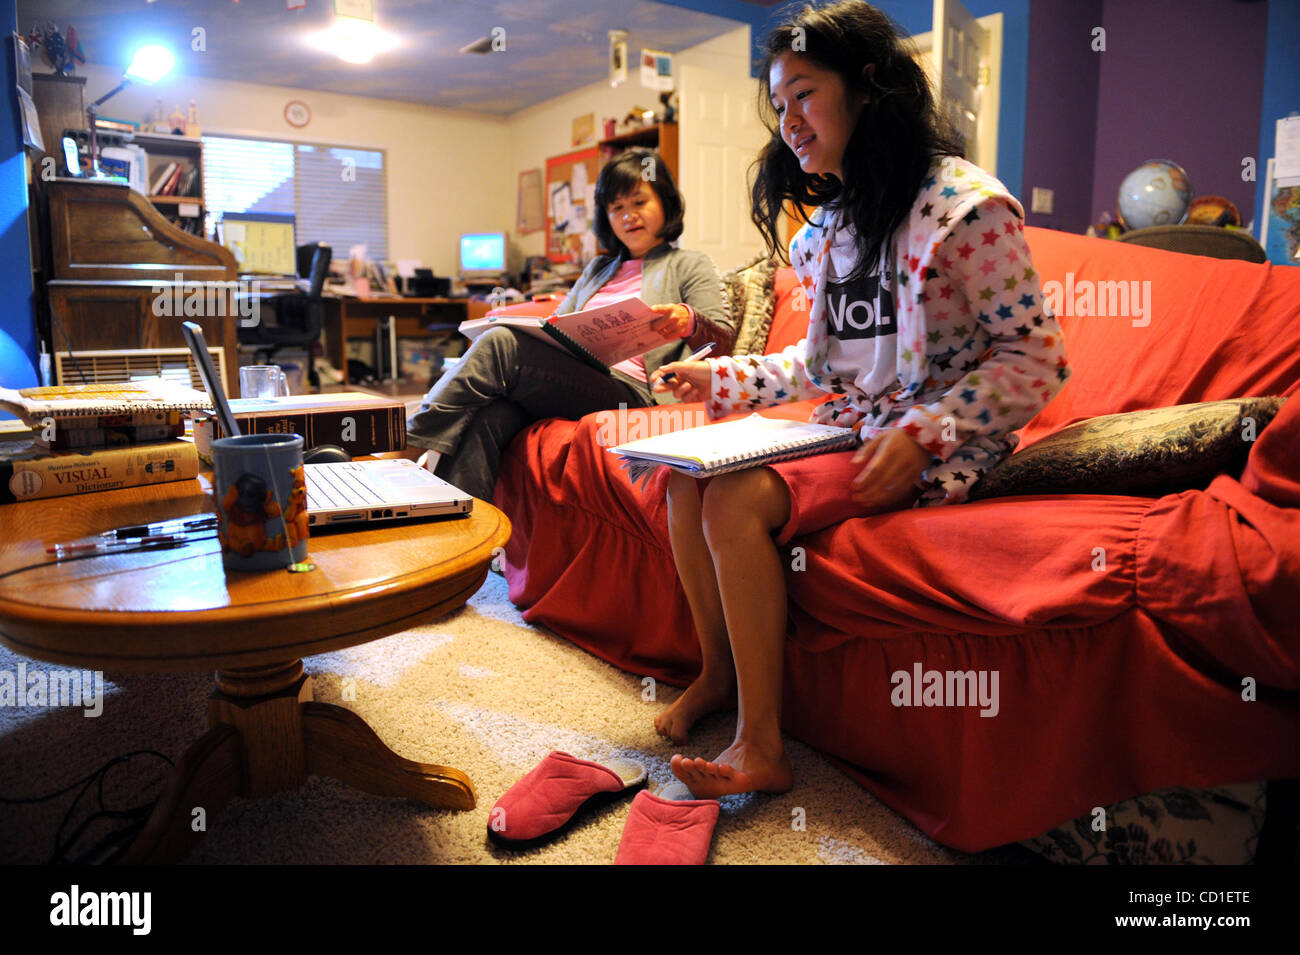 merriam webster stock photos merriam webster stock images alamy lede spelling bee peggy kao reads words to her daughter josephine kao